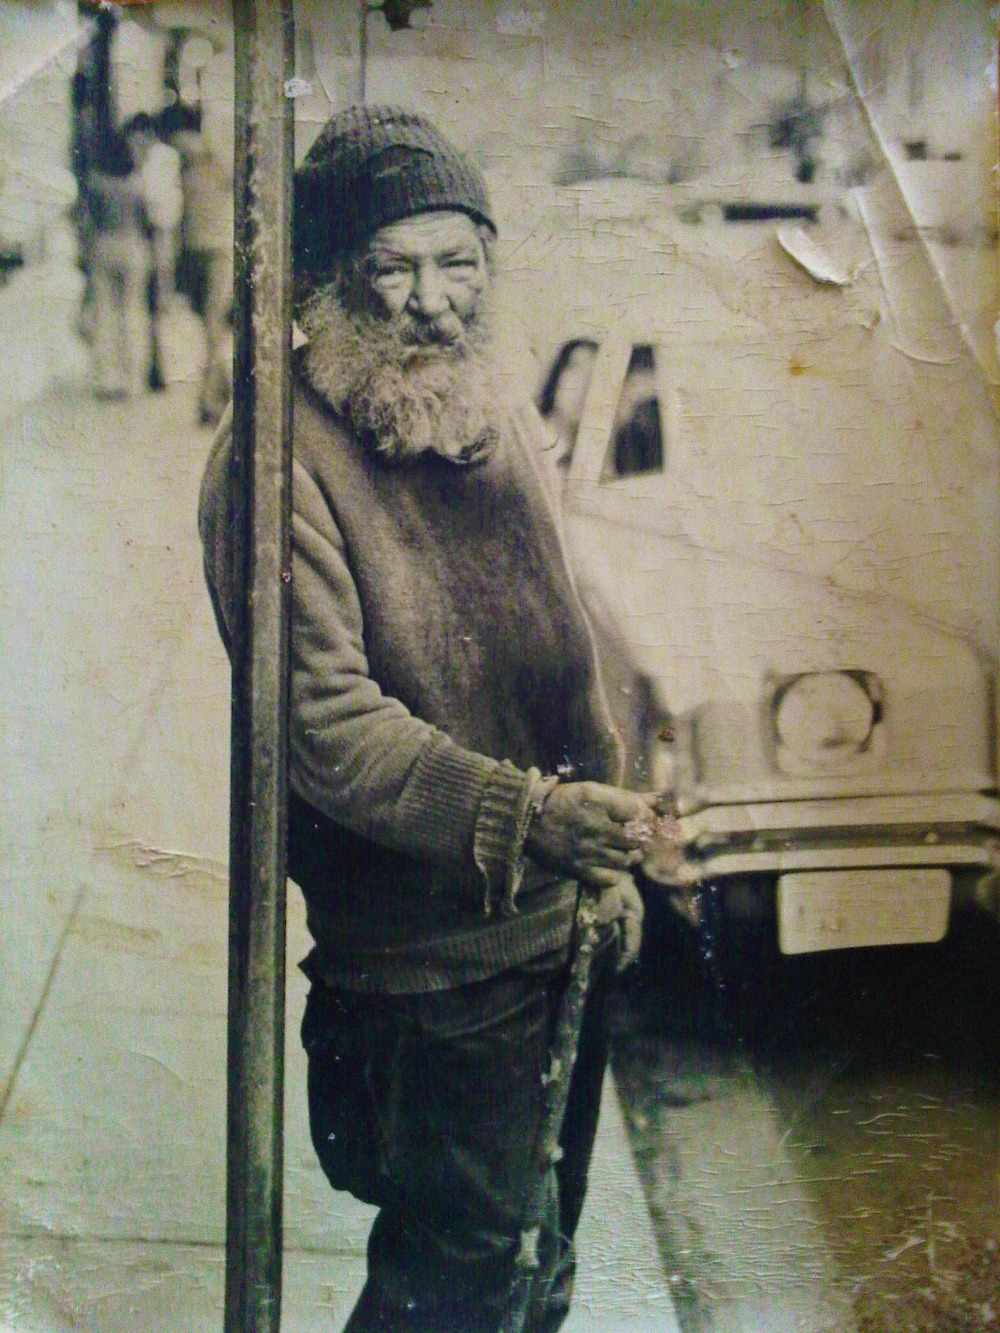 Homeless Man, Washington, DC 1960s